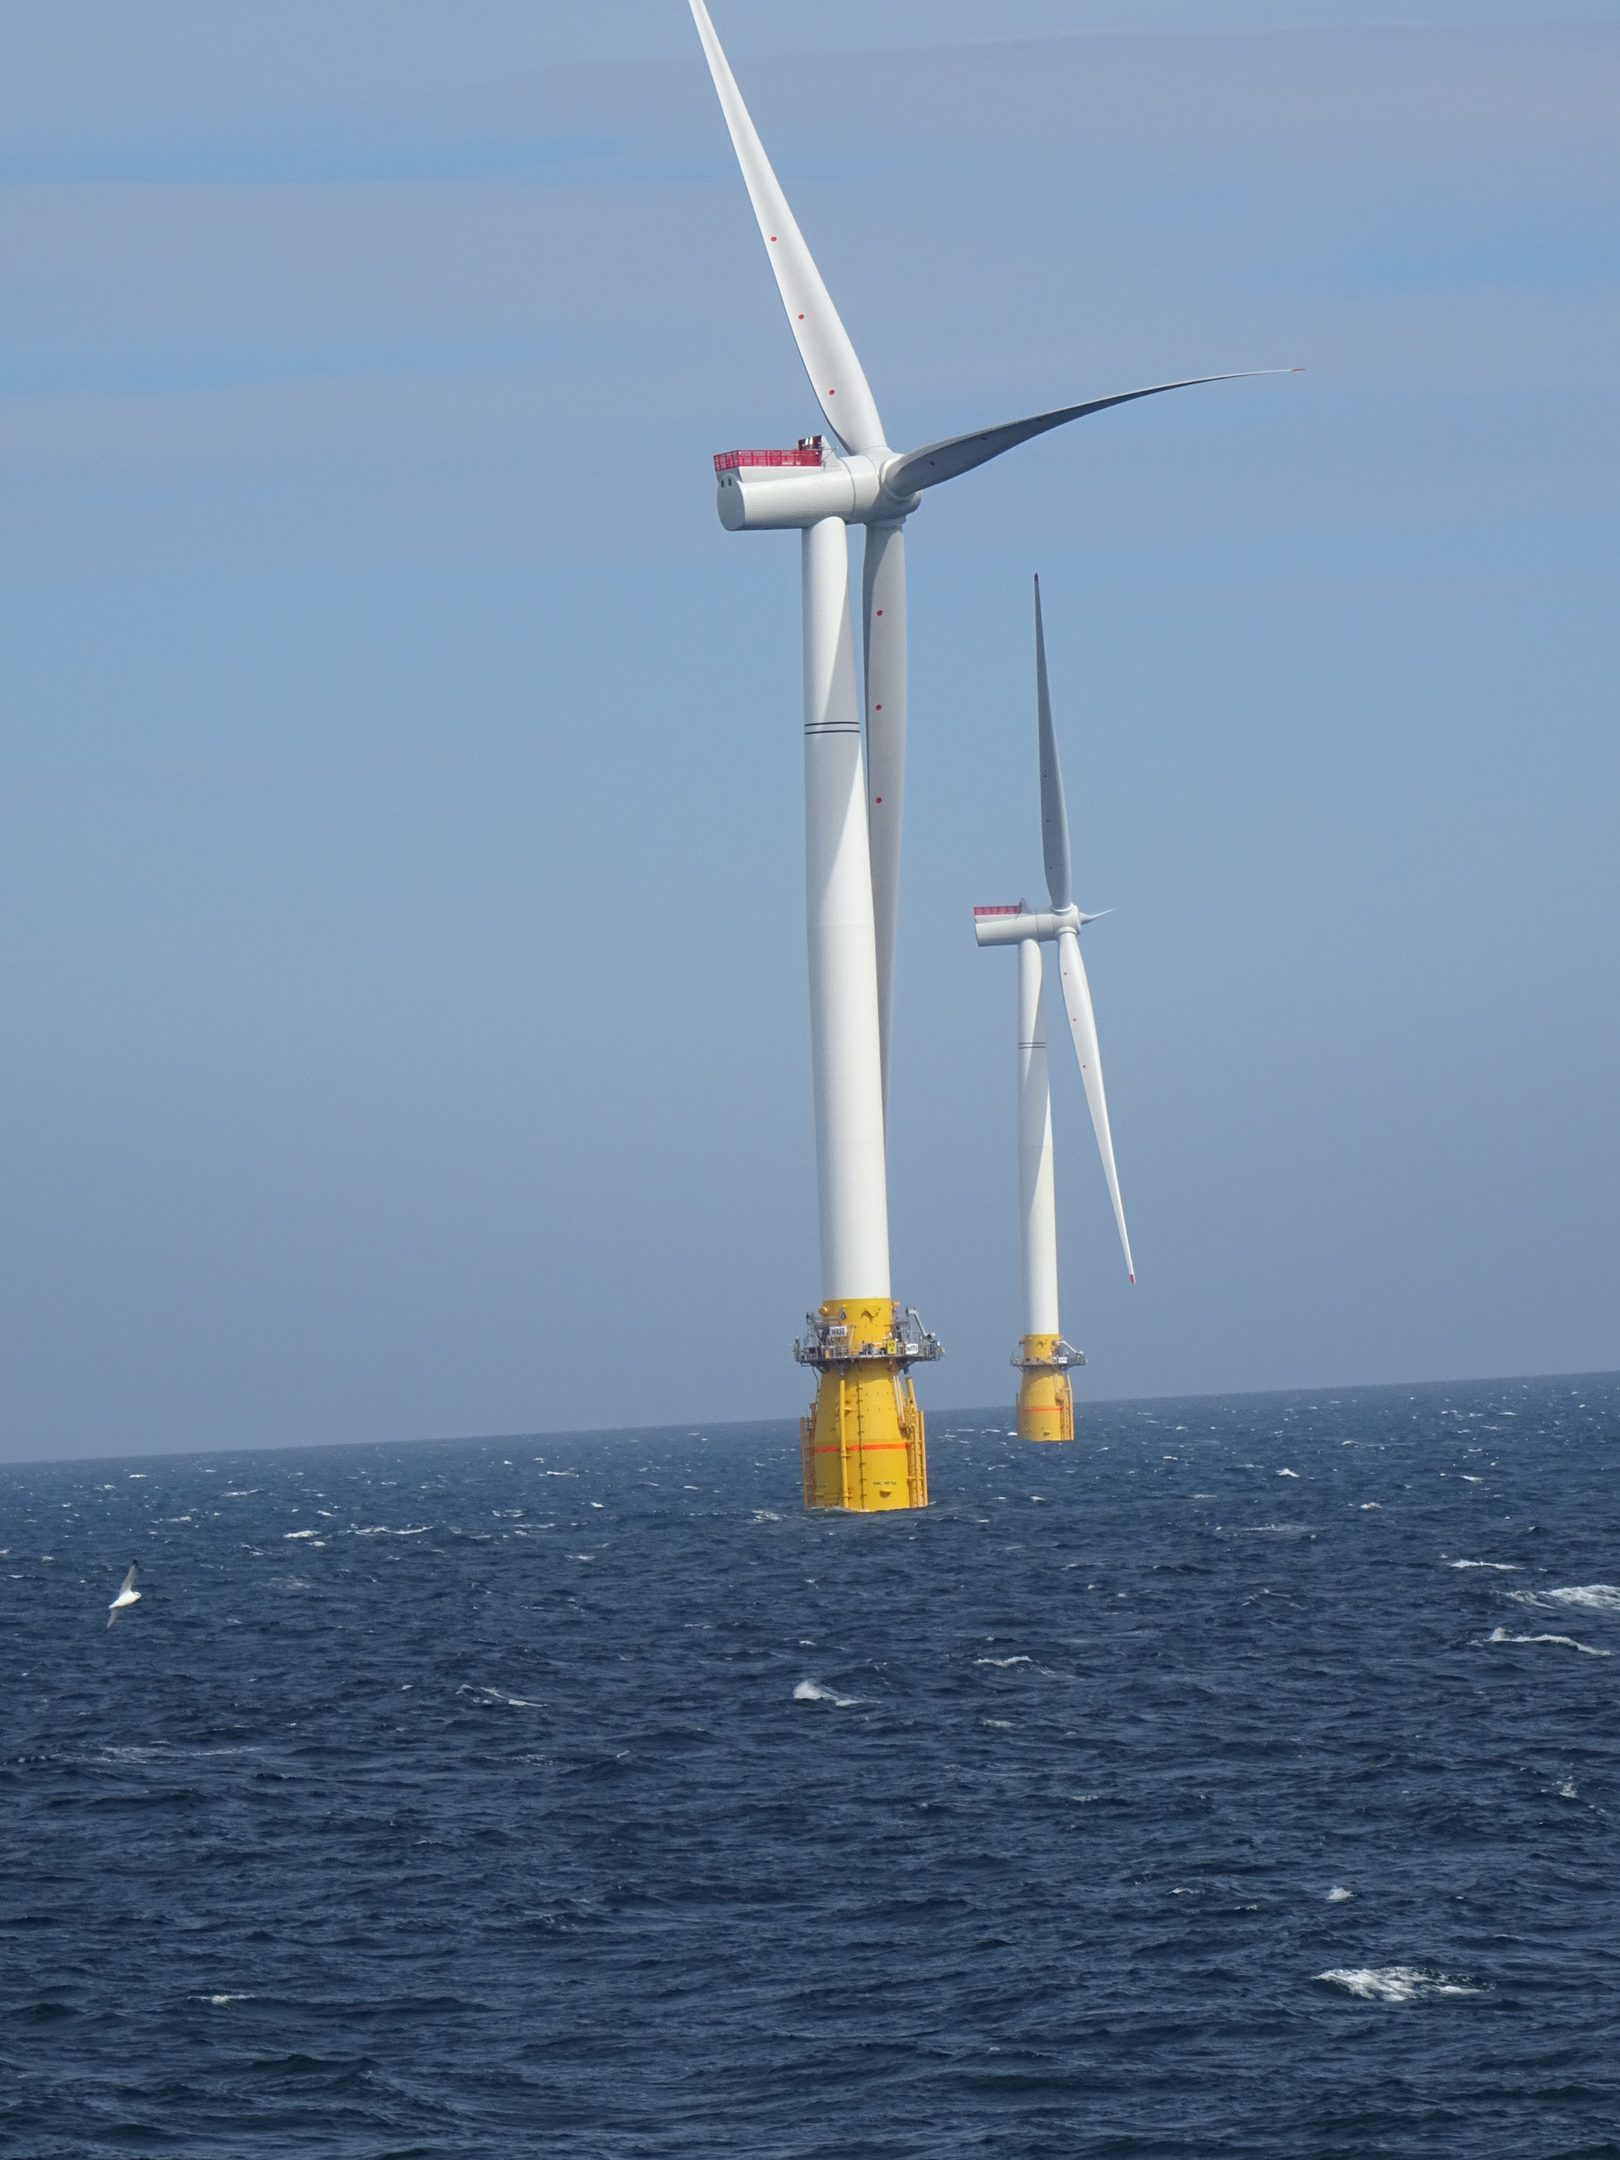 Two of the Hywind turbines